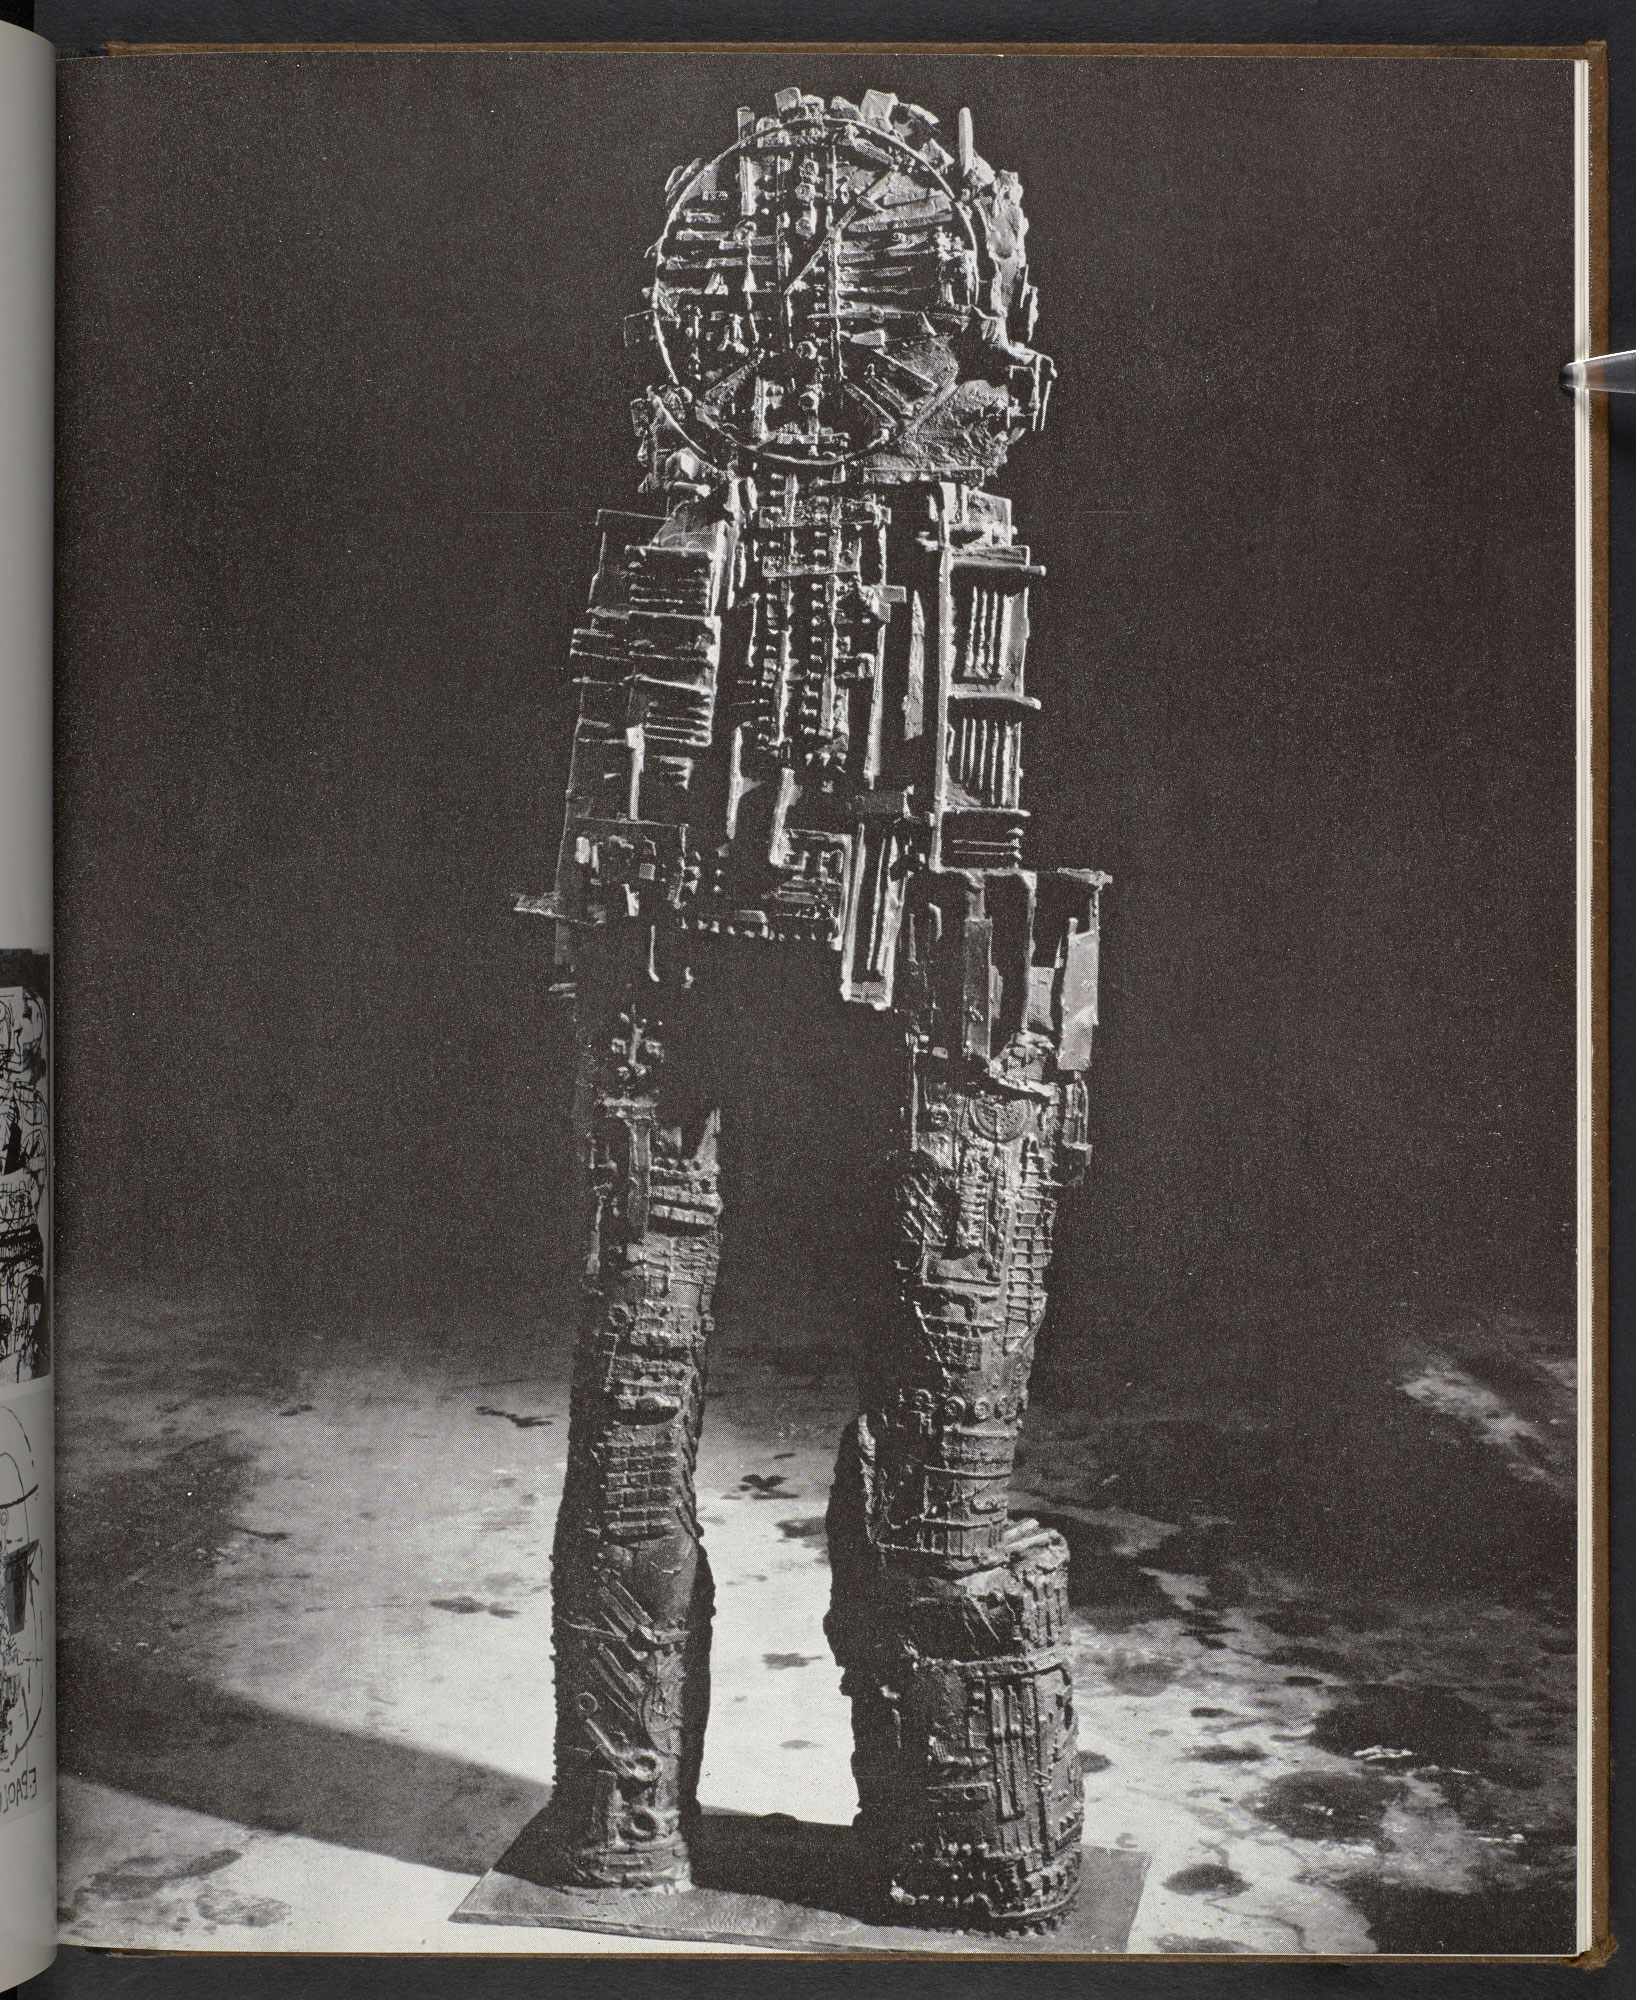 The Metallization of a Dream, works by Eduardo Paolozzi